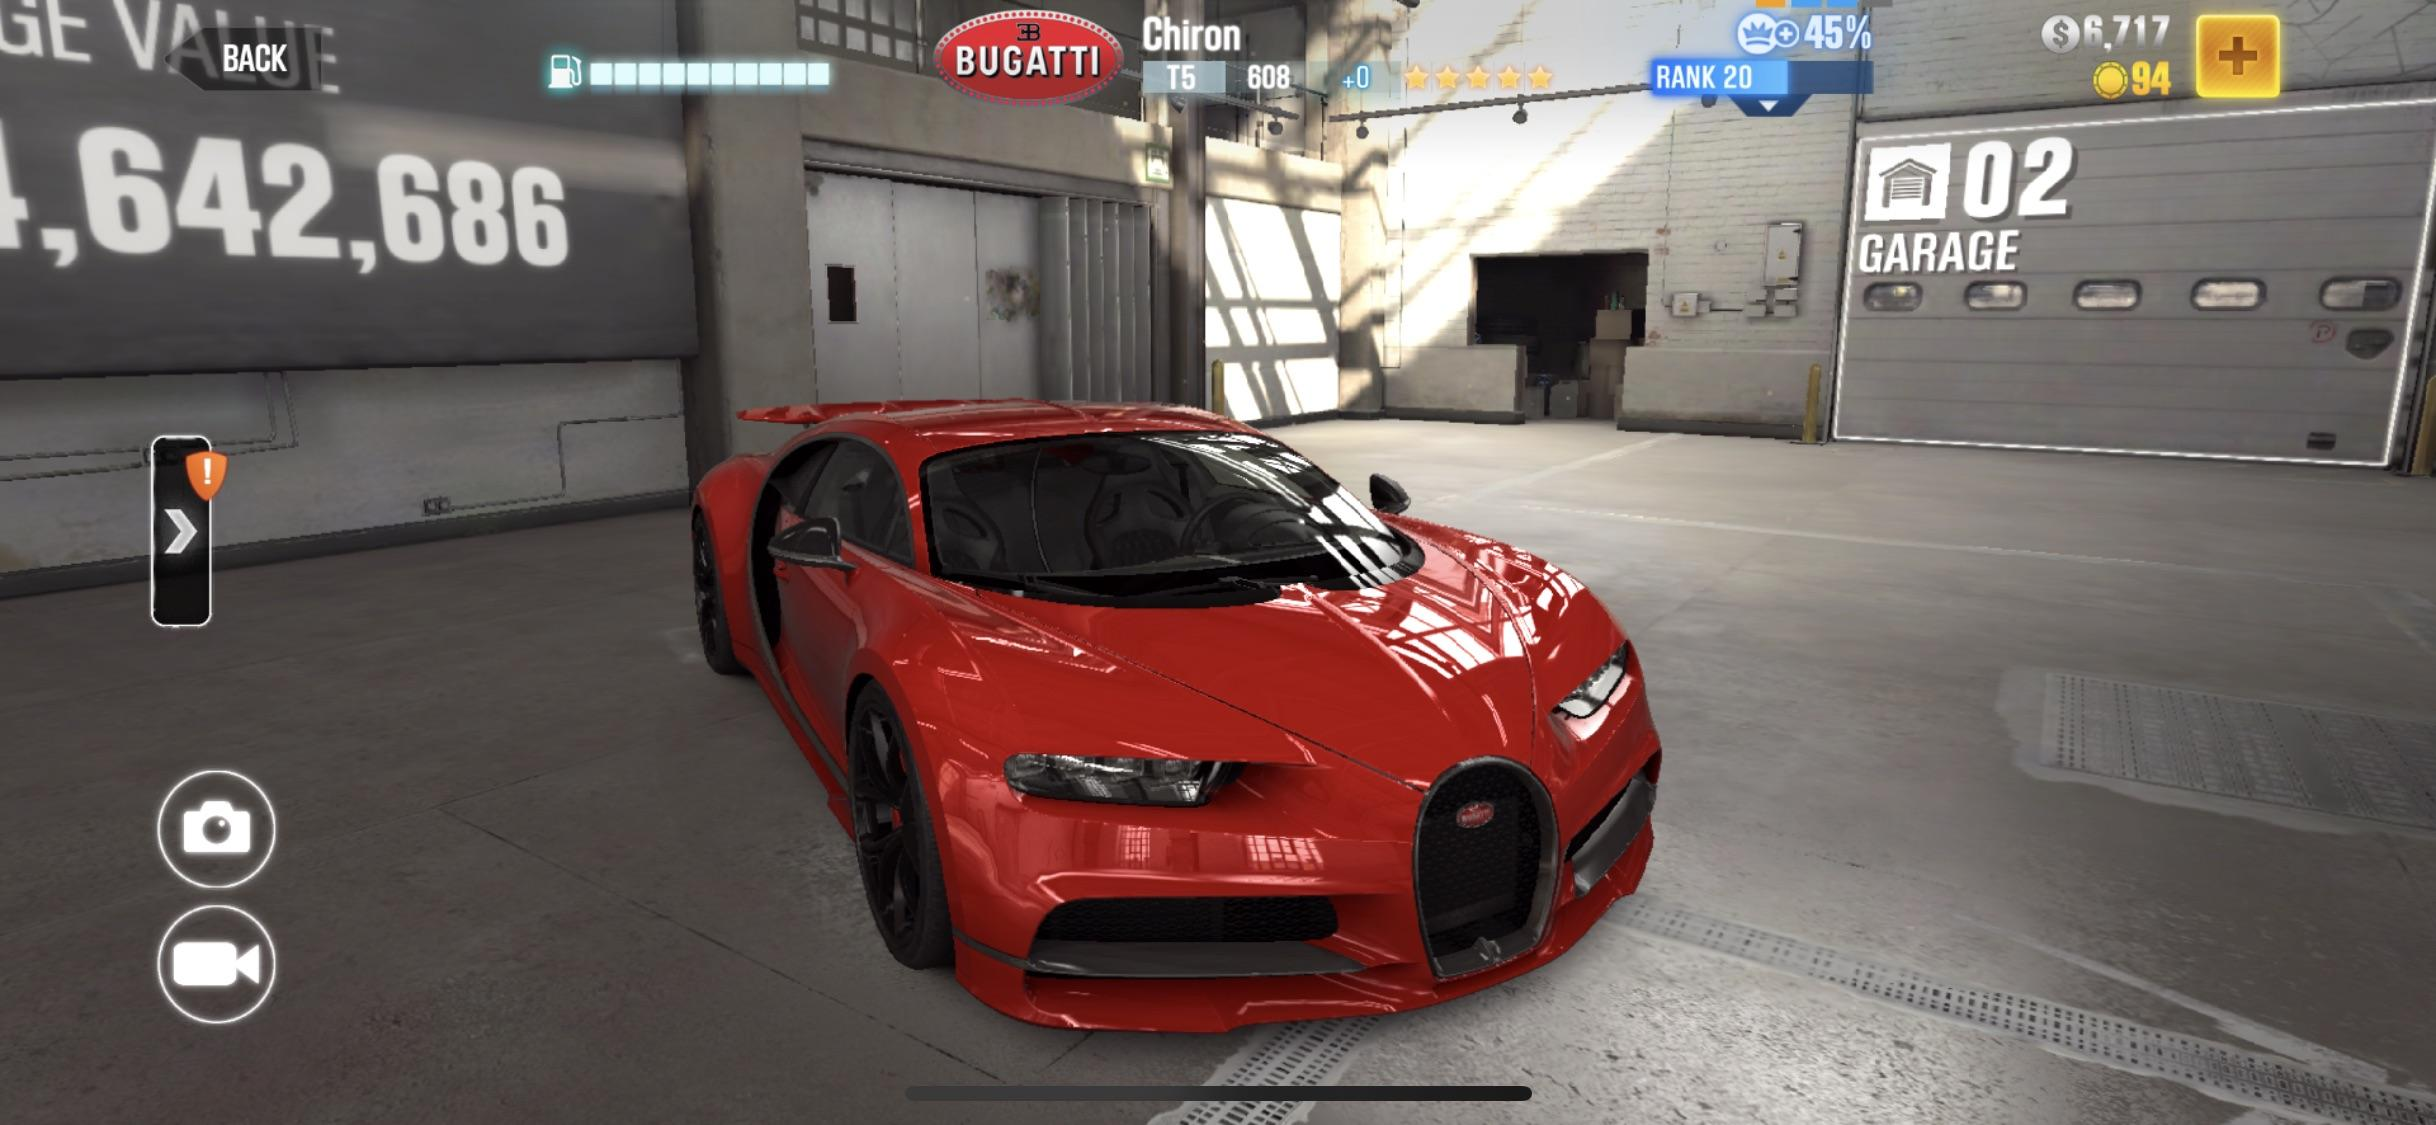 Csr2 how to get 5 star cars